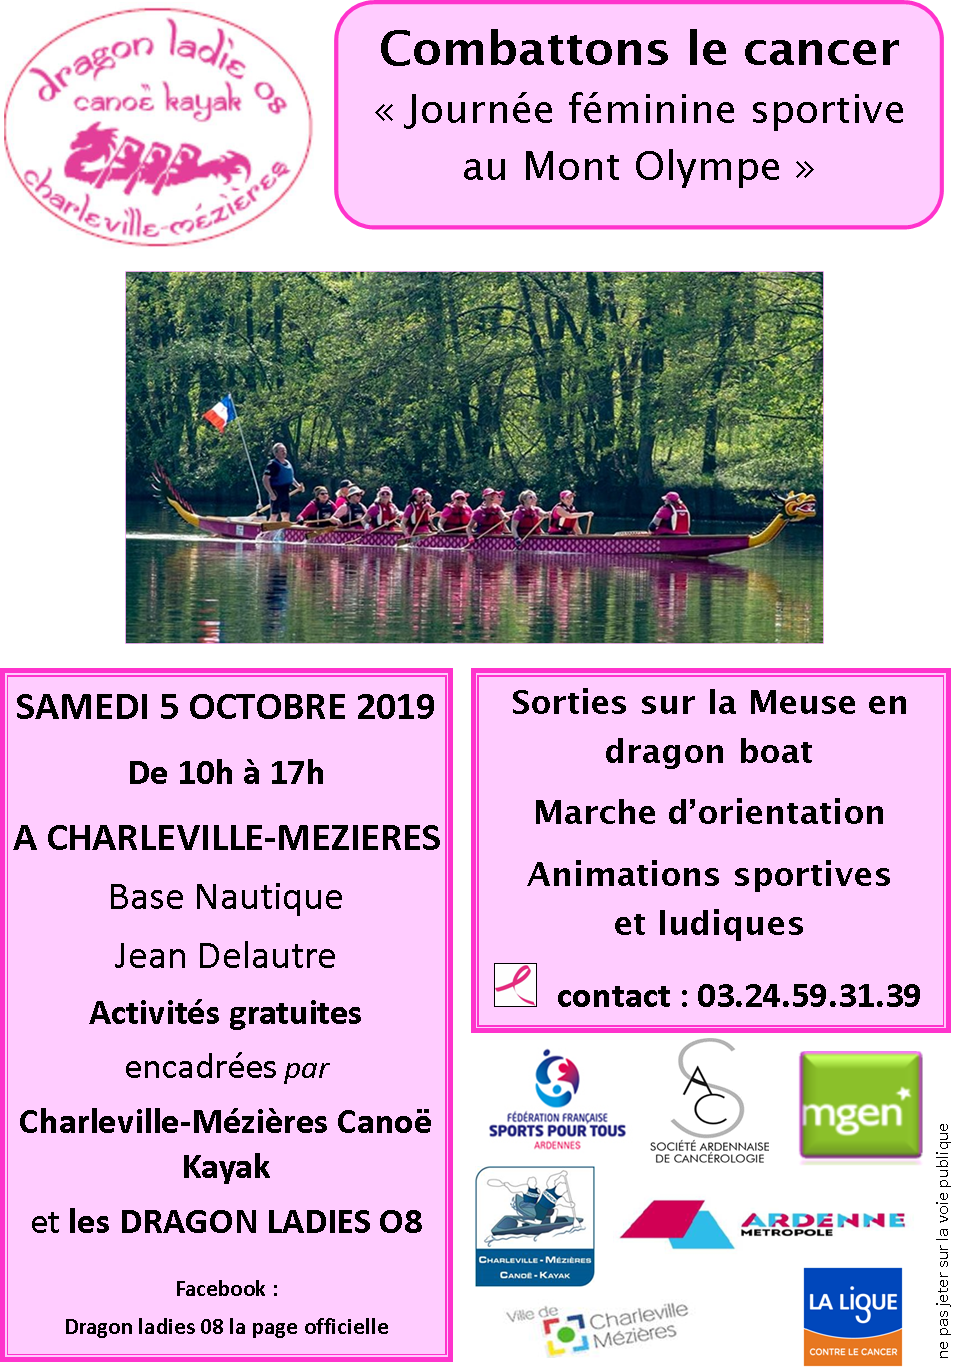 Image affiche or 1